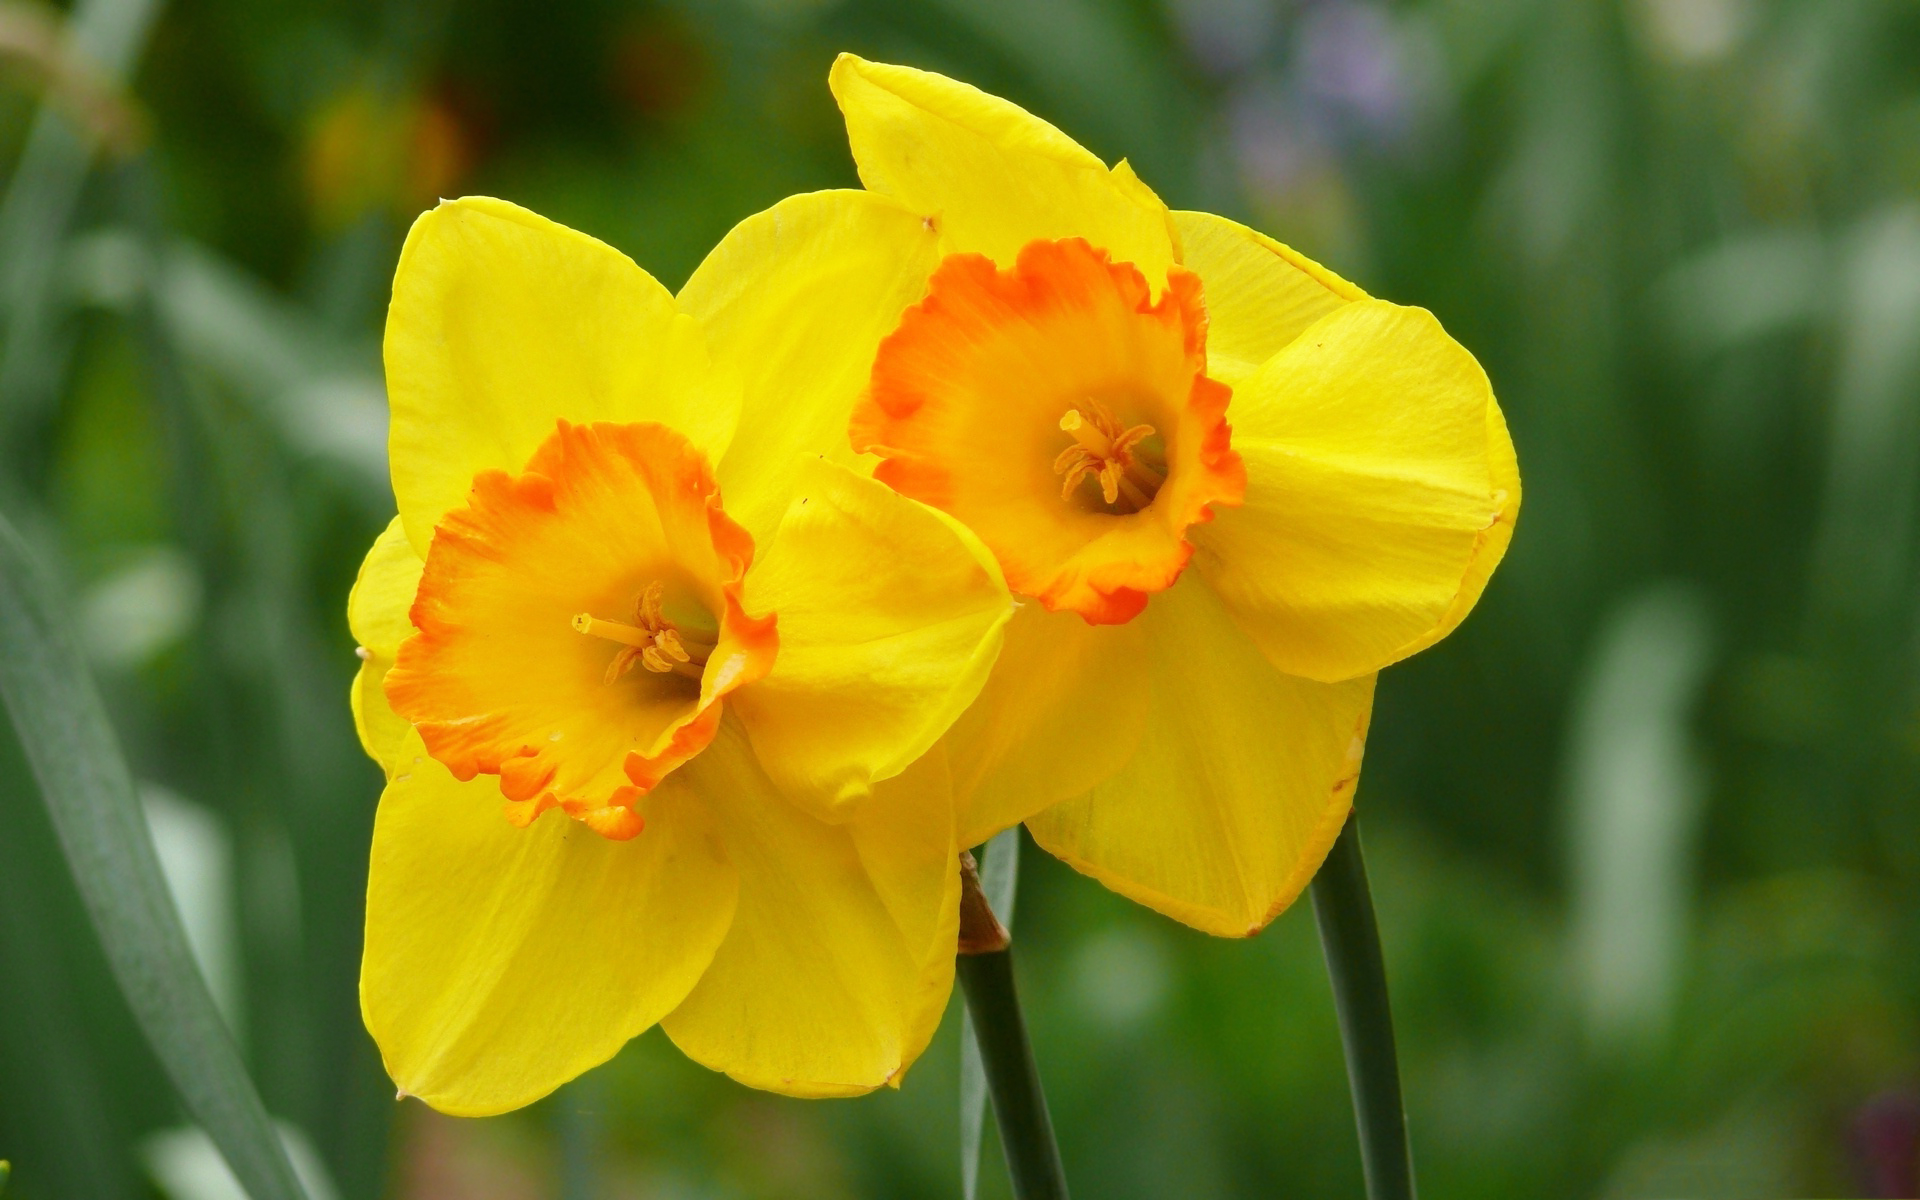 Yellow daffodils hd